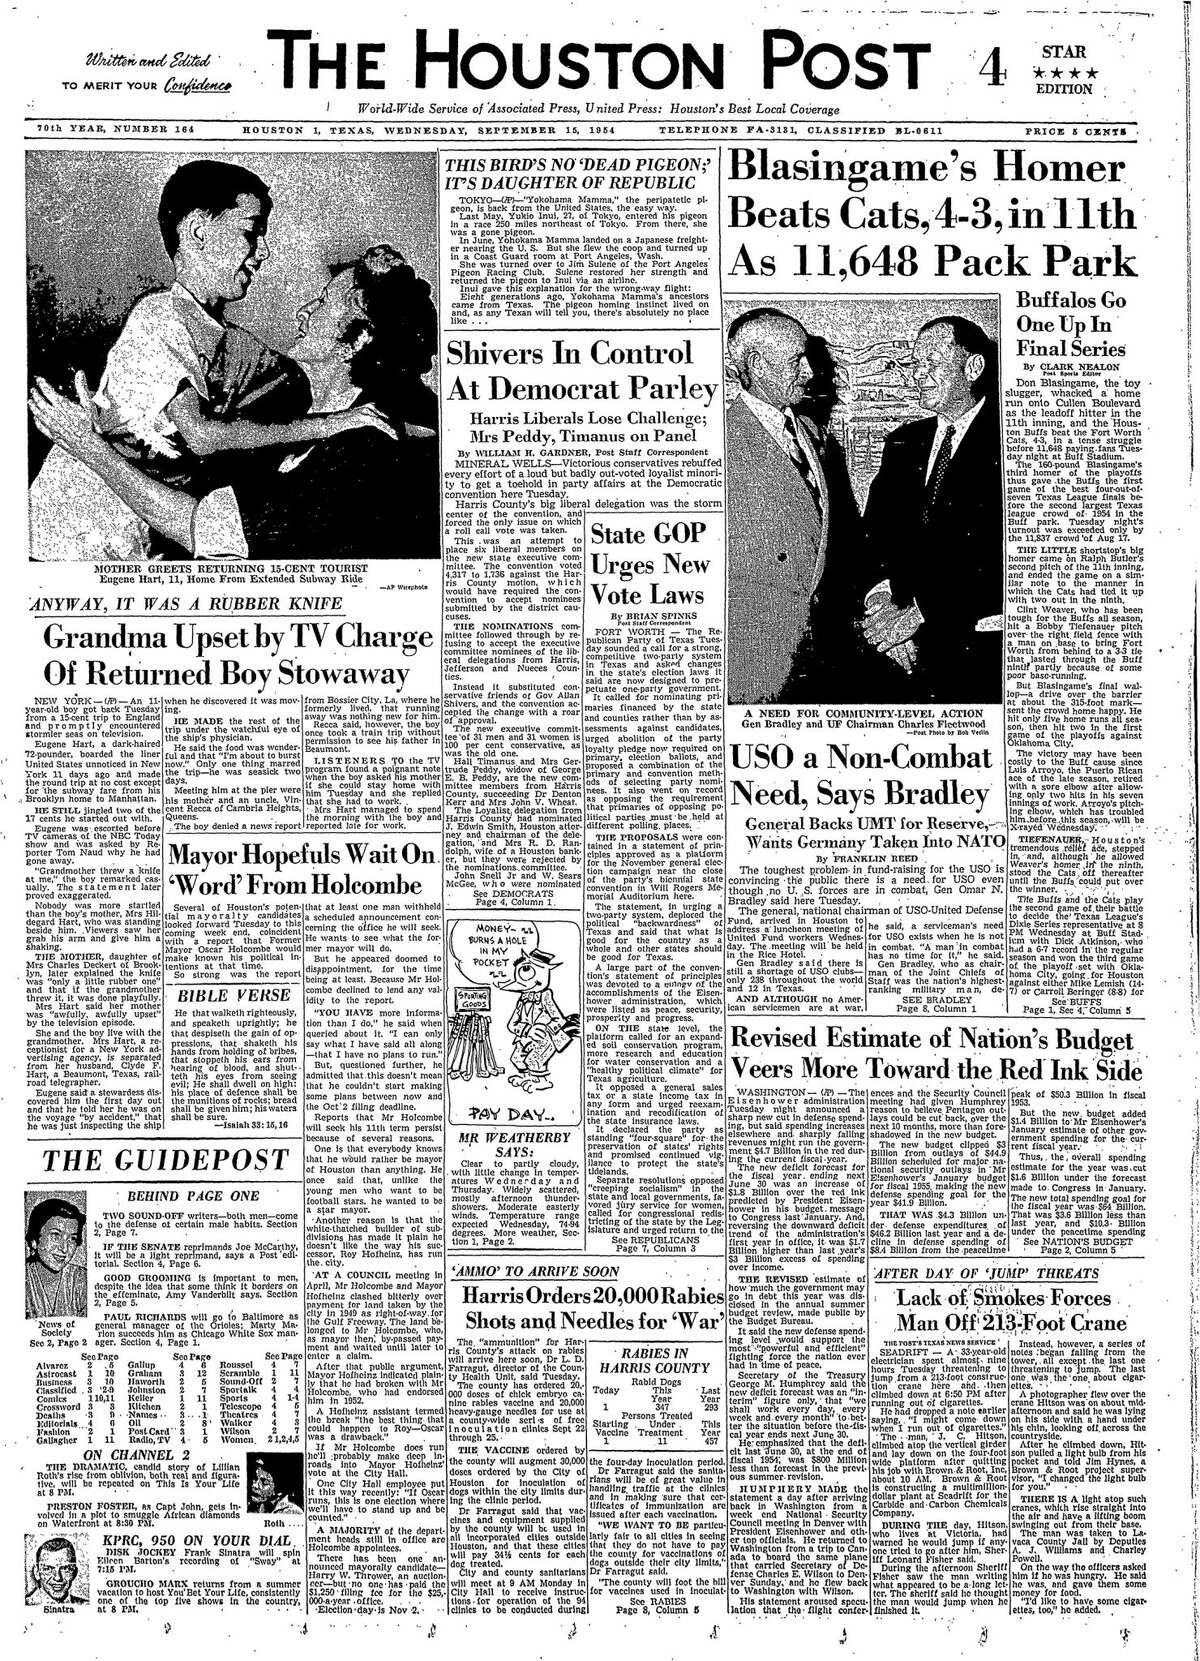 Houston Post front page from Sept. 15, 1954.